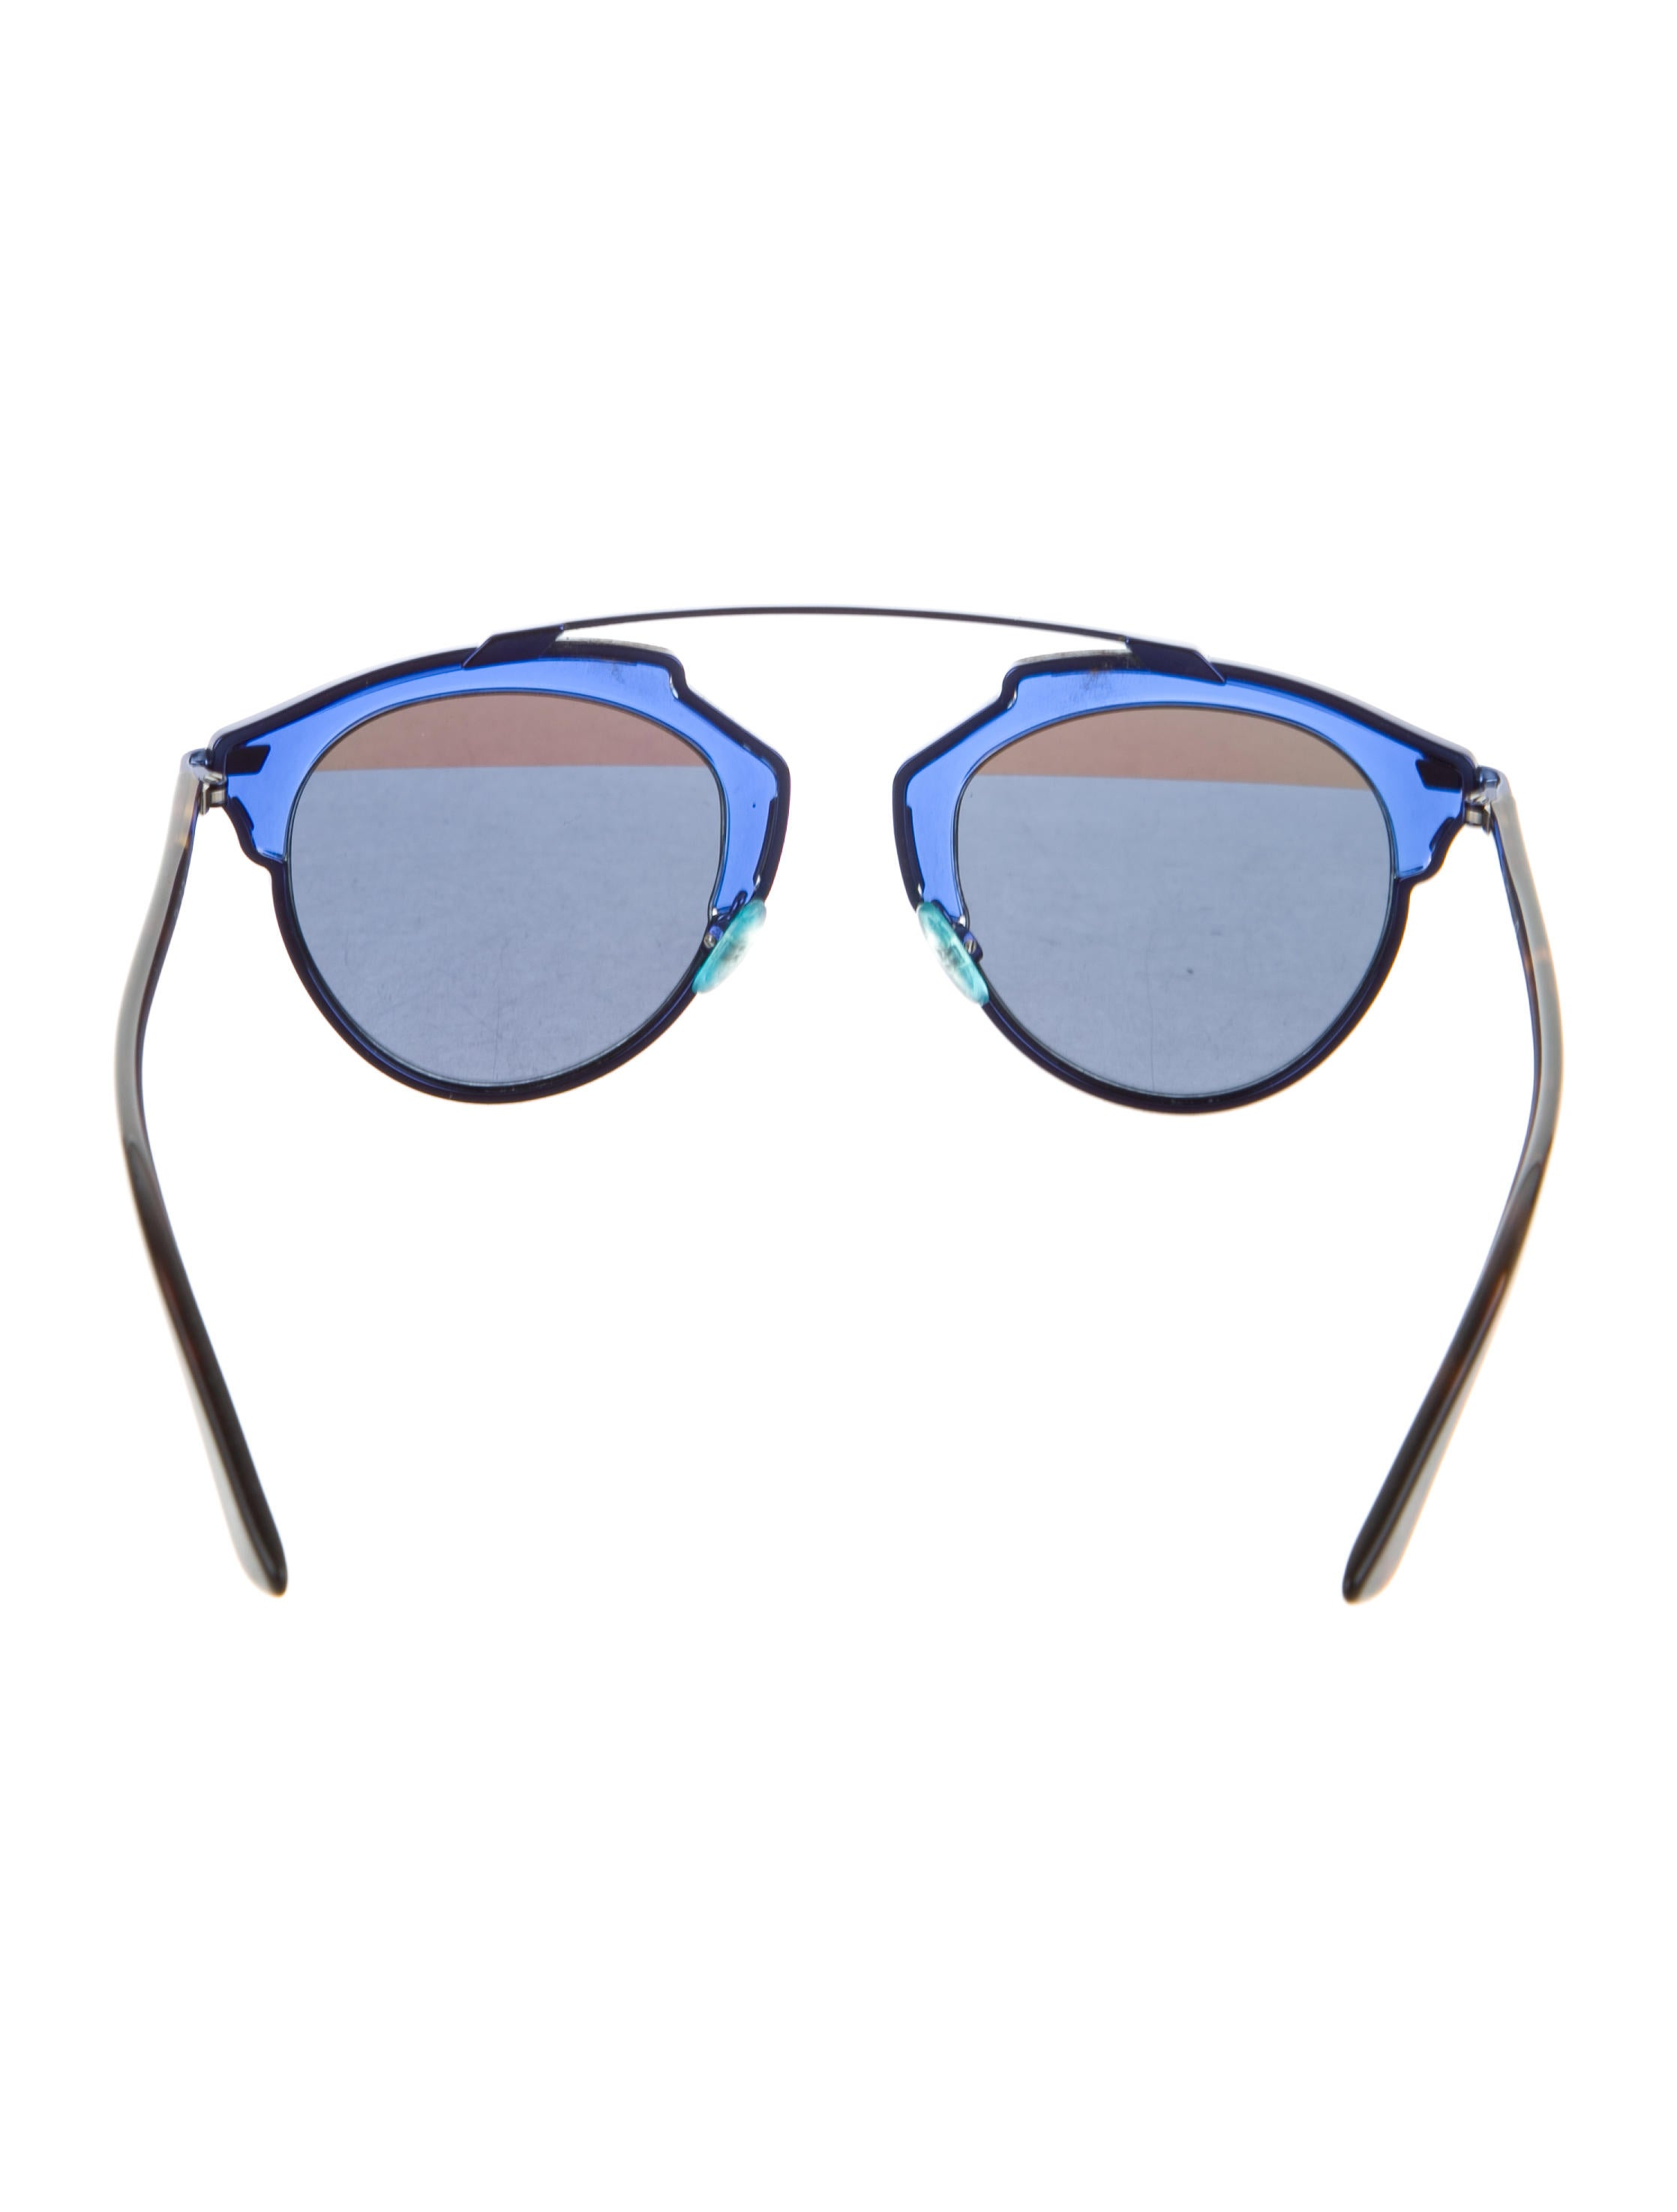 ee17d74a796 Christian Dior Women s So Real Sunglasses